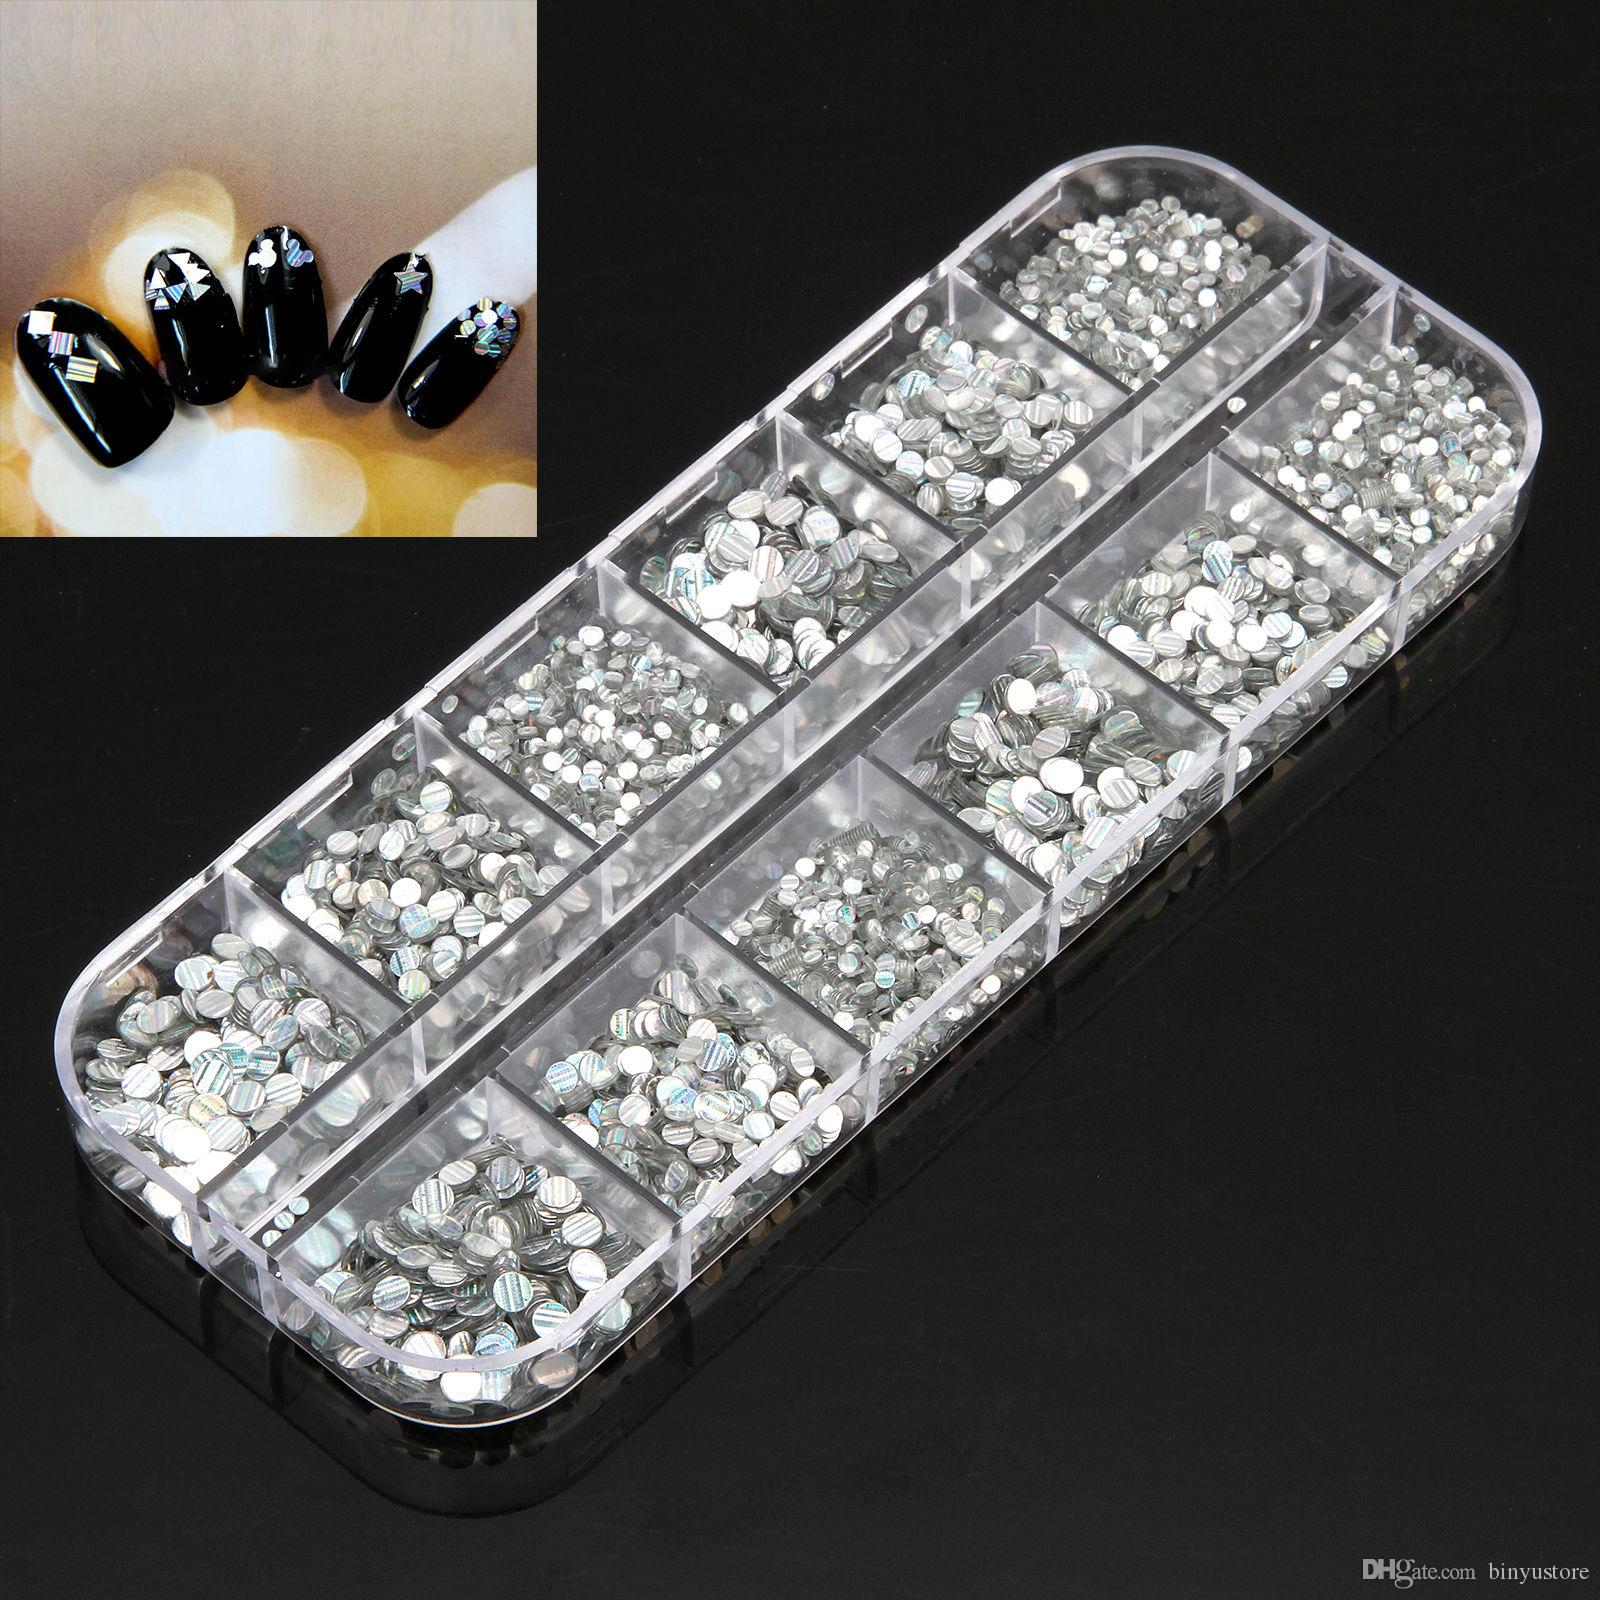 1mm 2mm 3mm Nail Art Decoration Glitter Shiny Round Striped Sequins Paillette come in storage box